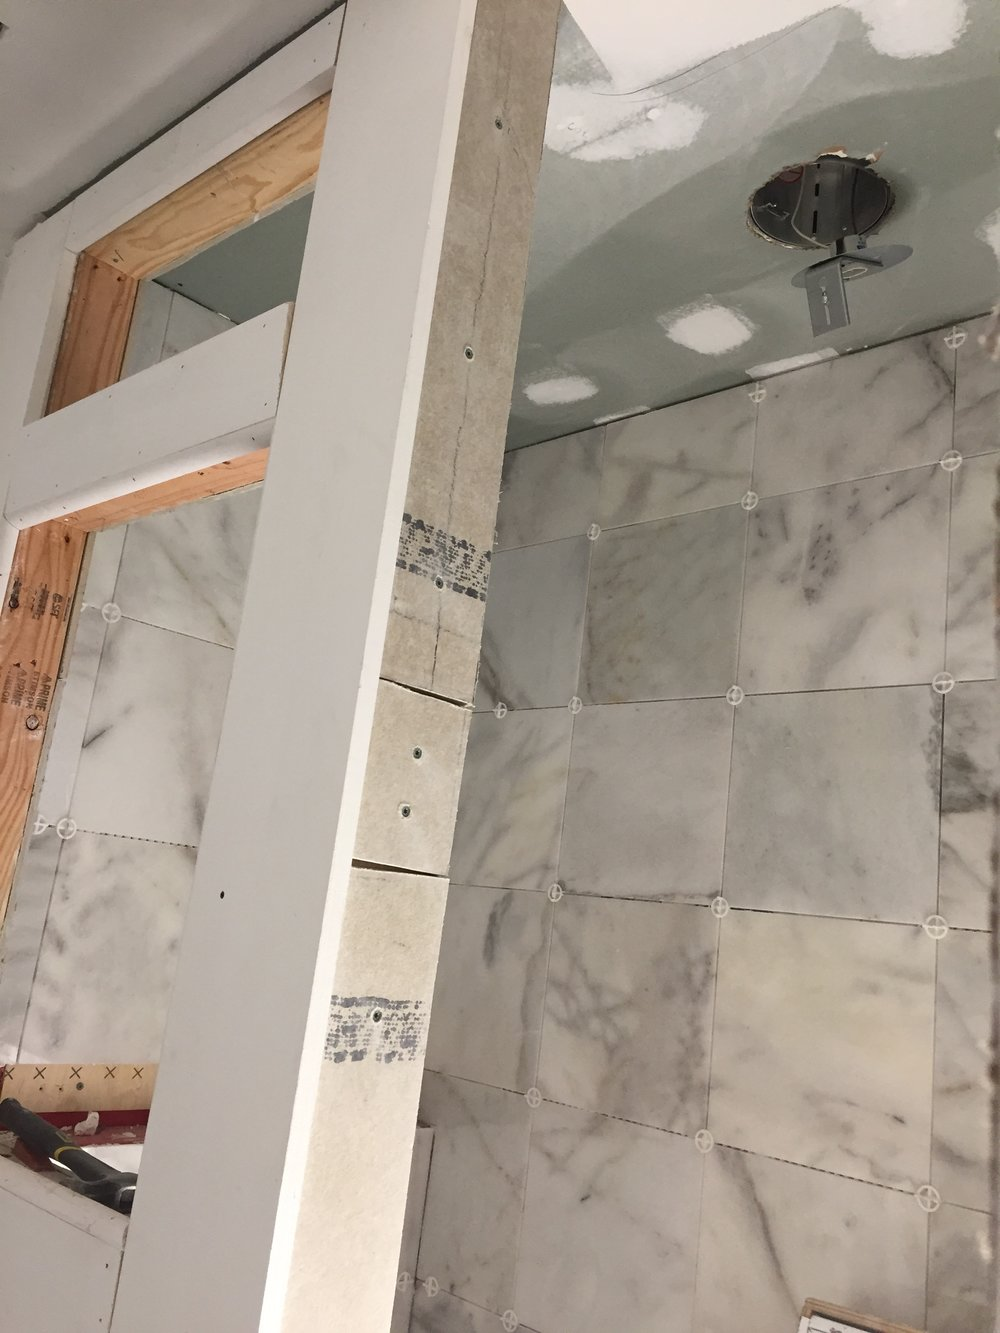 THE MASTER BATH SHOWER